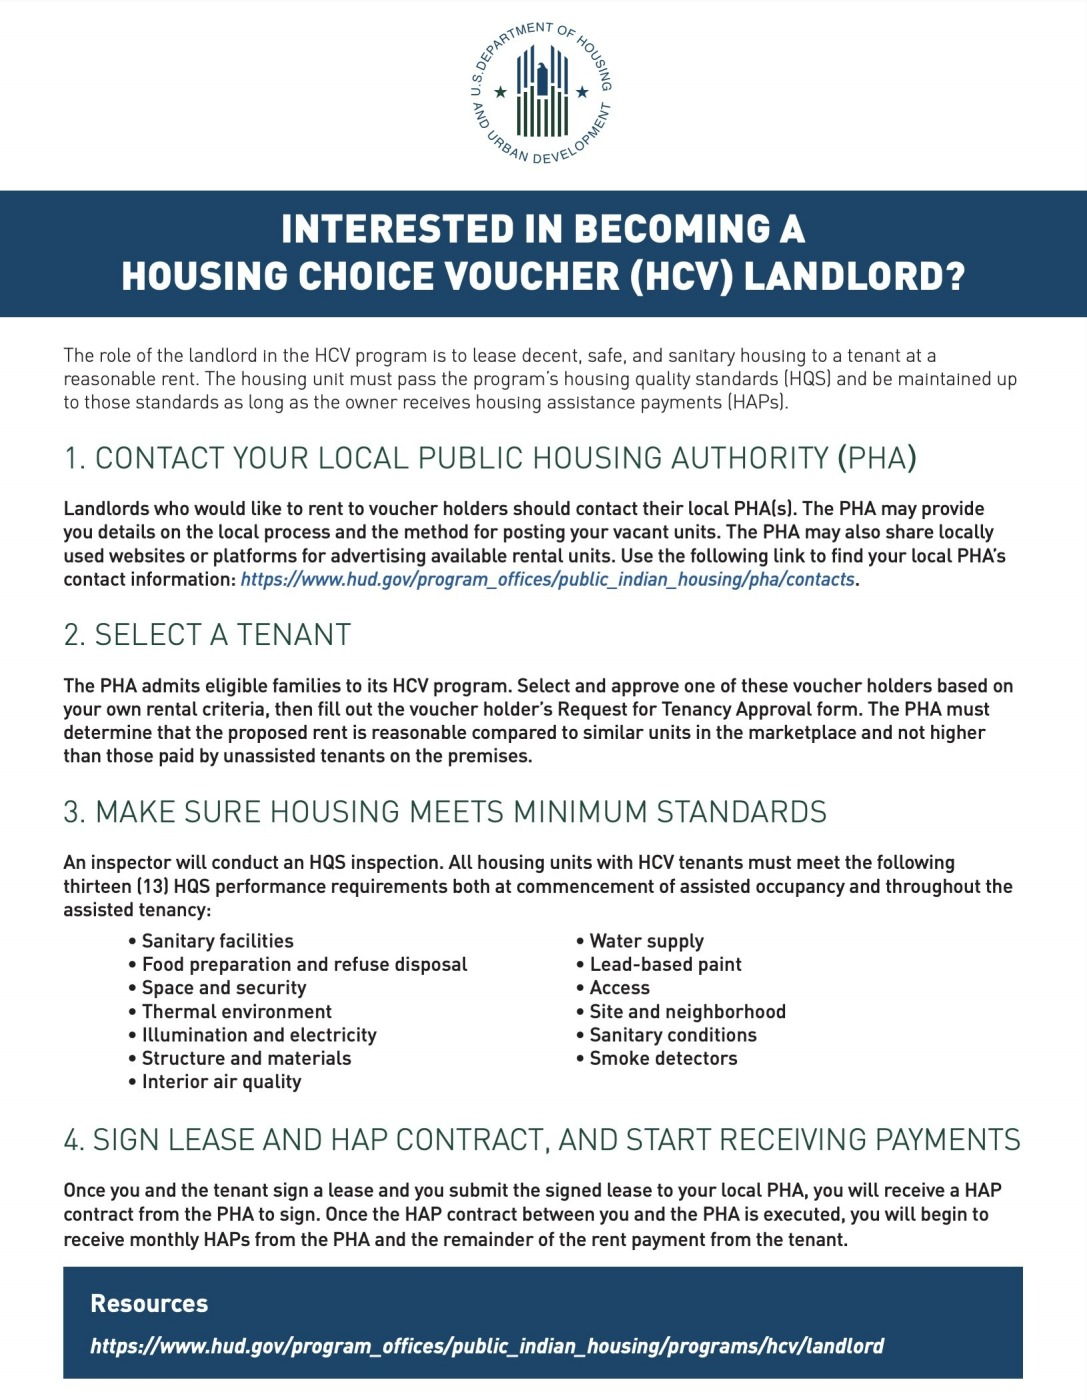 Interested in Becoming a HCV Landlord?